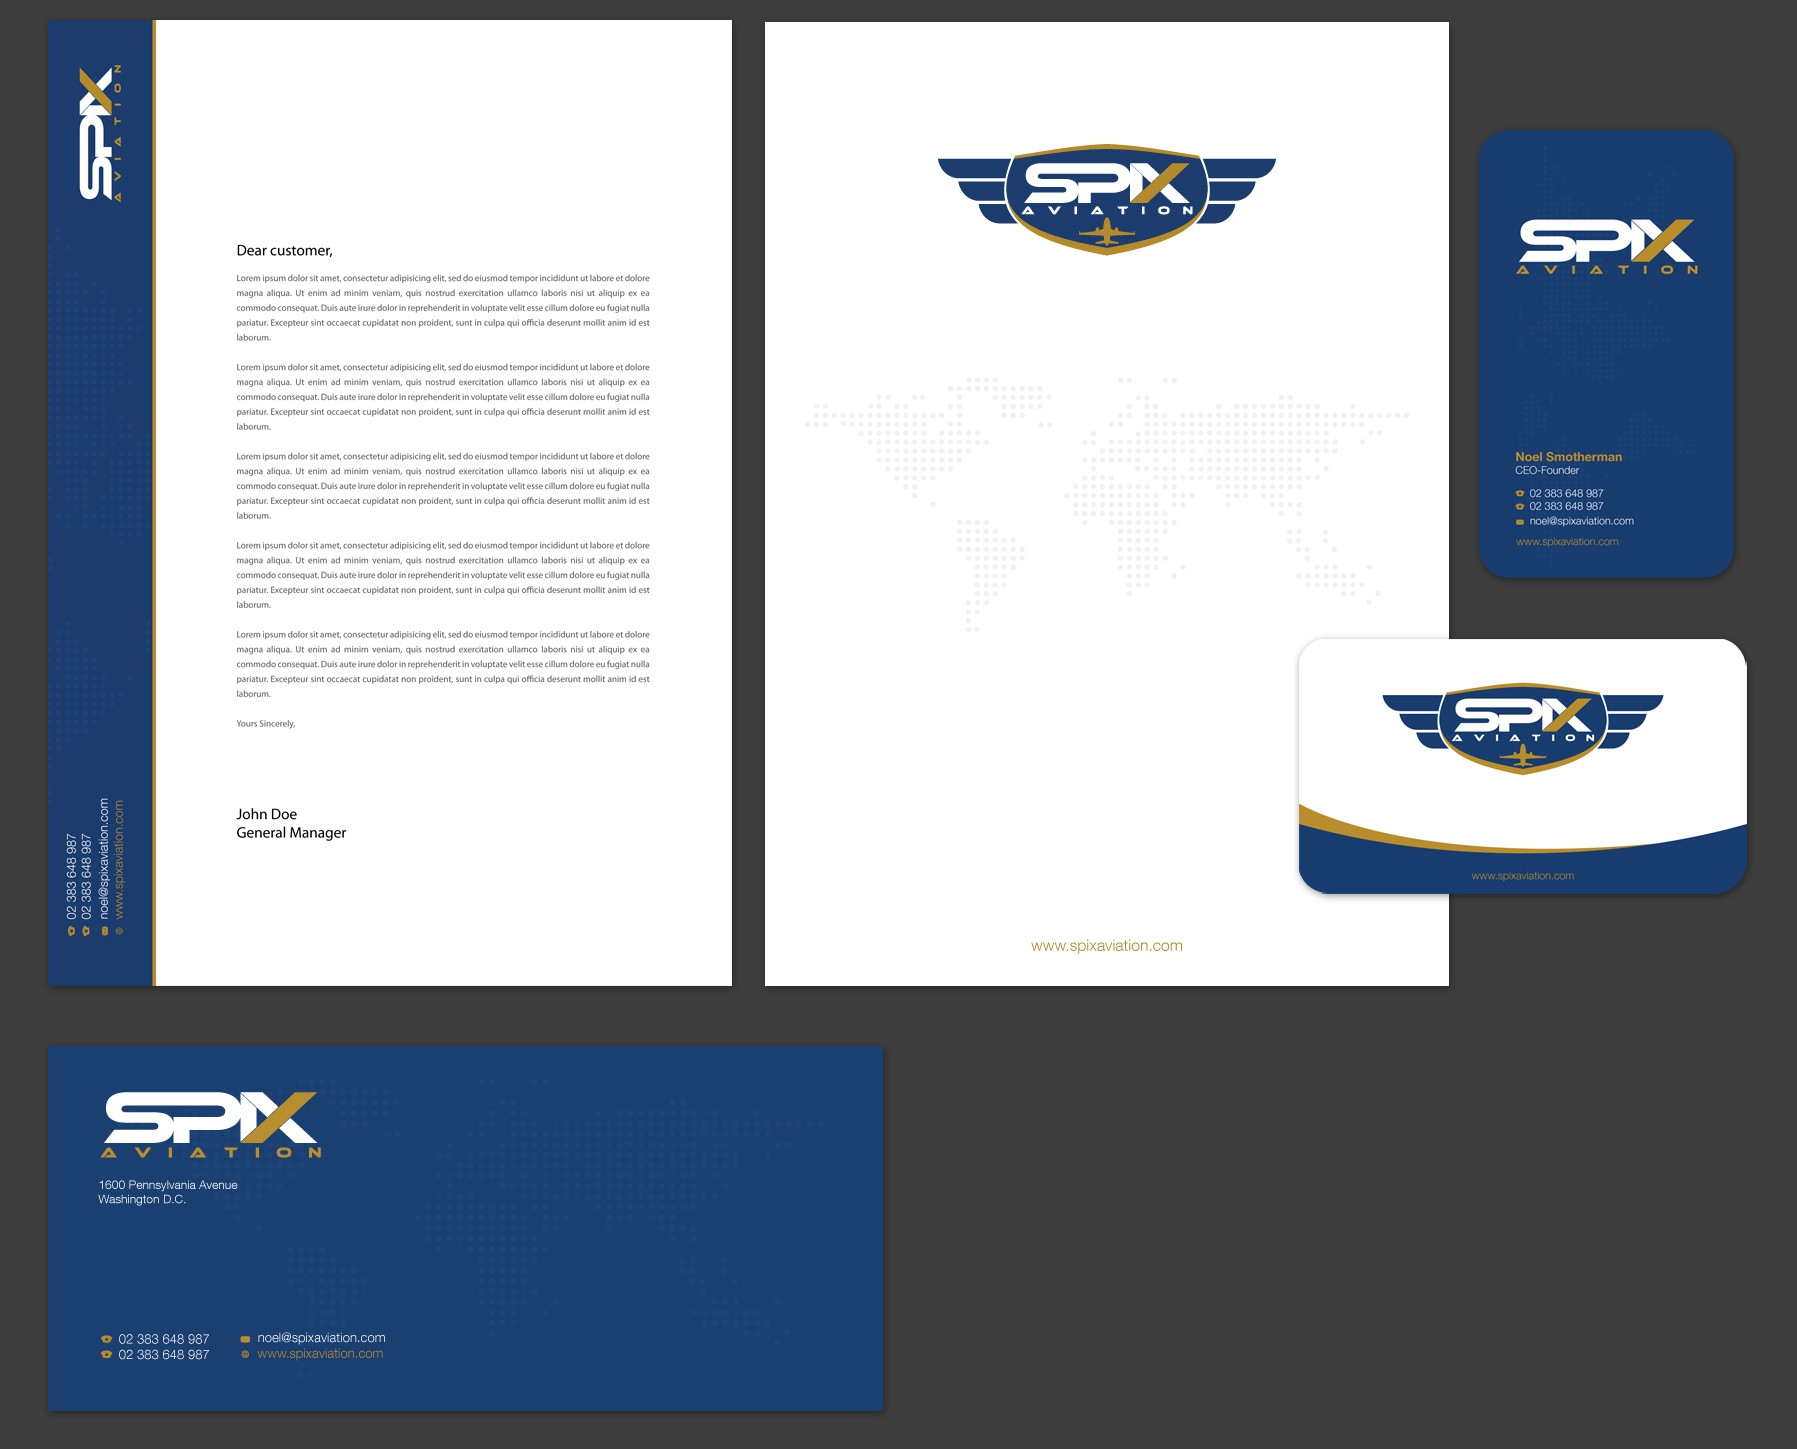 New stationery wanted for SPIX Aviation